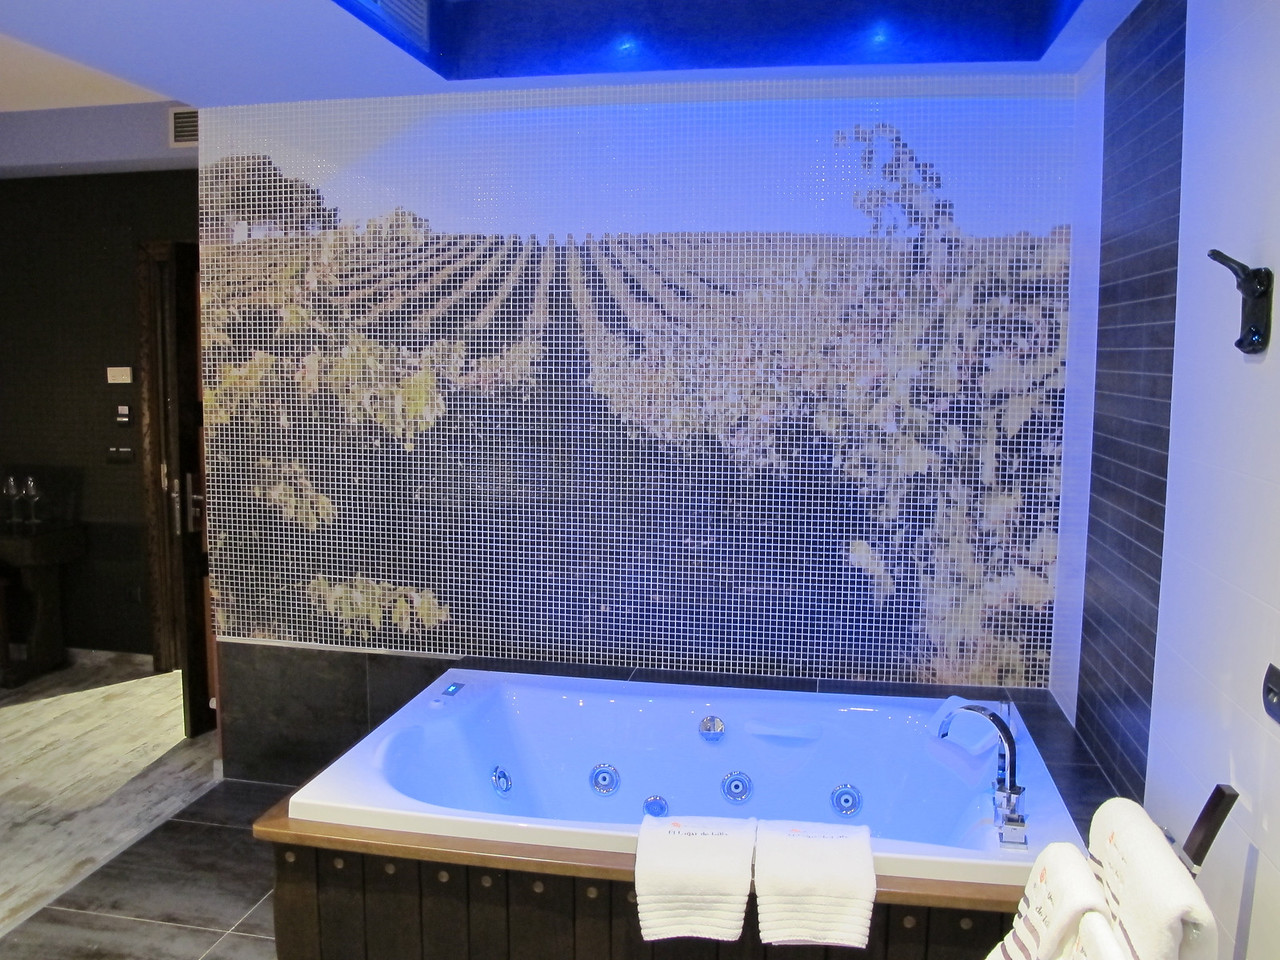 Behind the jacuzzi is a tiled wall with a mosaic of a nearby vineyard.